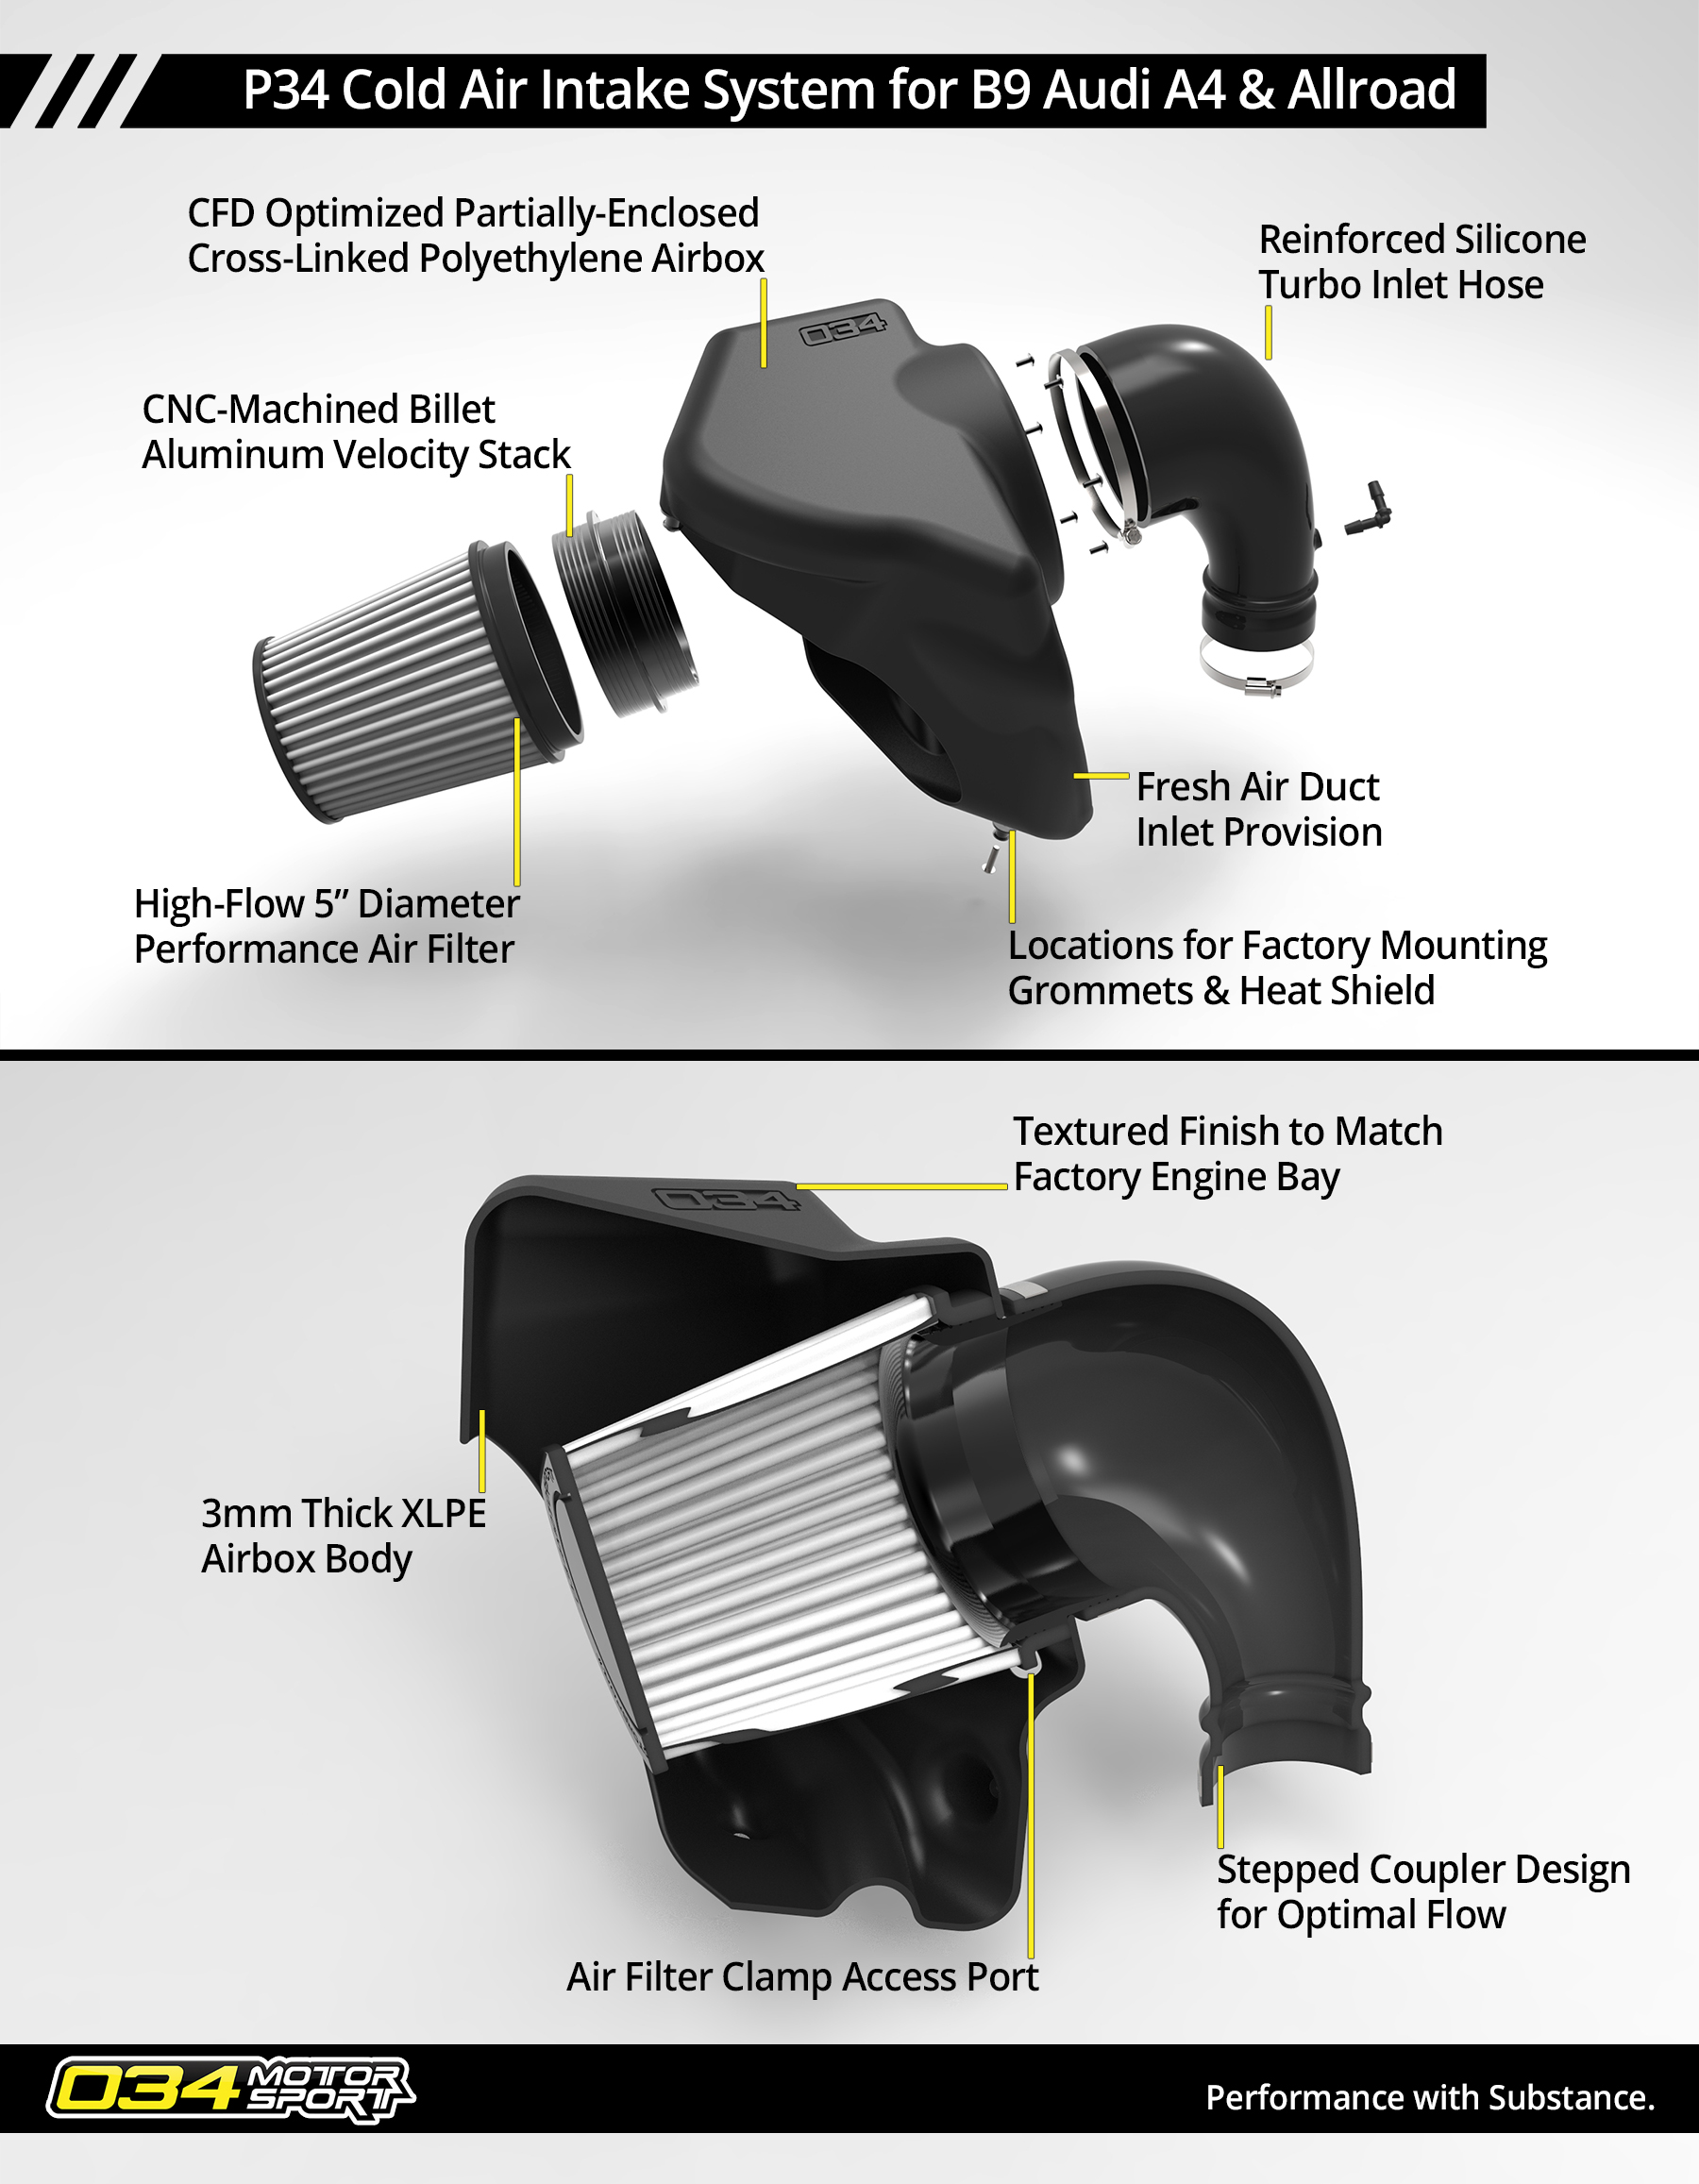 P#$ Cold Air Intake System for B9 Audi A4 & Allroad